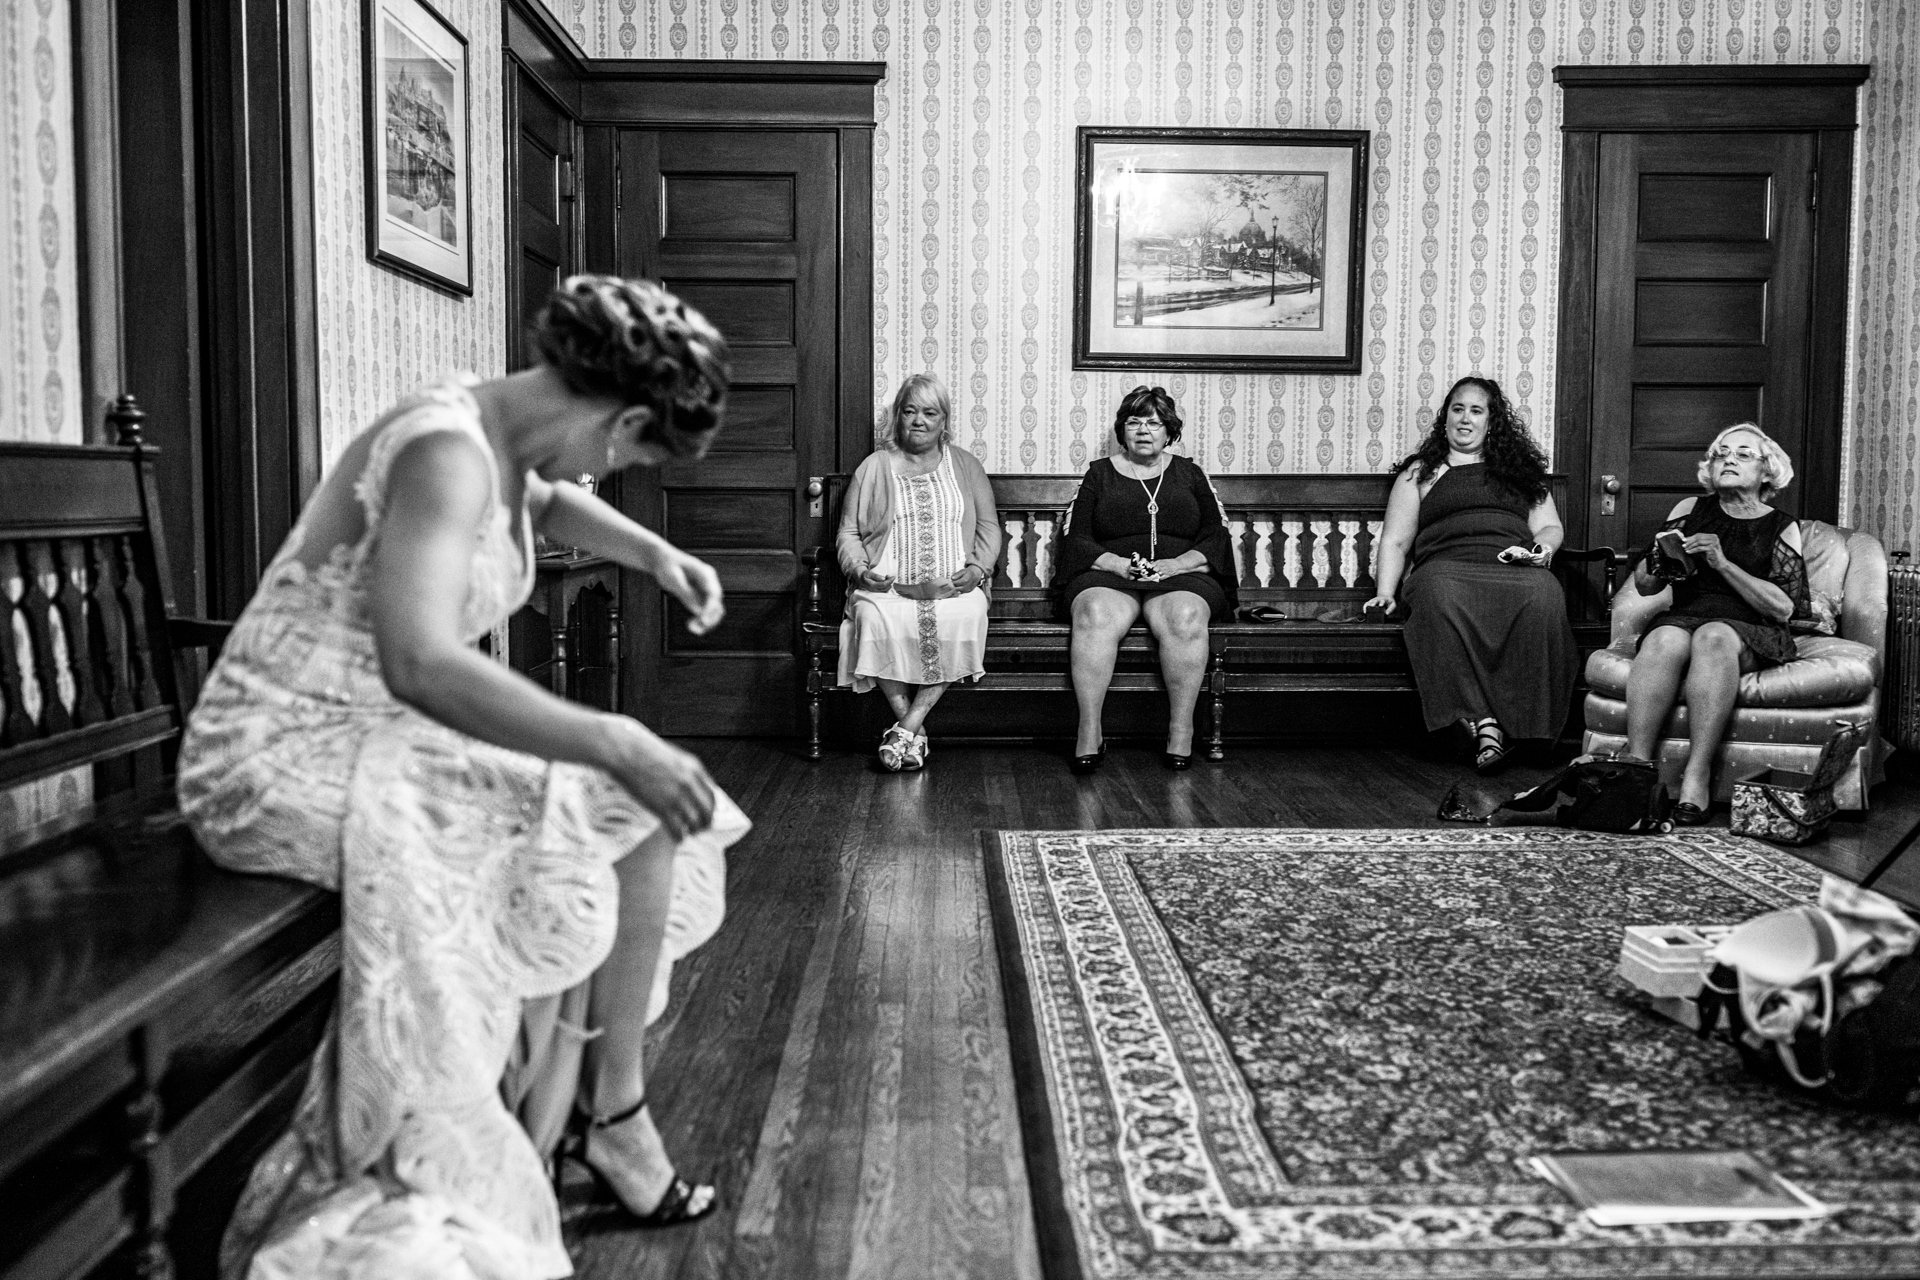 Summit Manor Wedding Venue for Historic Photos | The bride gets ready among her female family